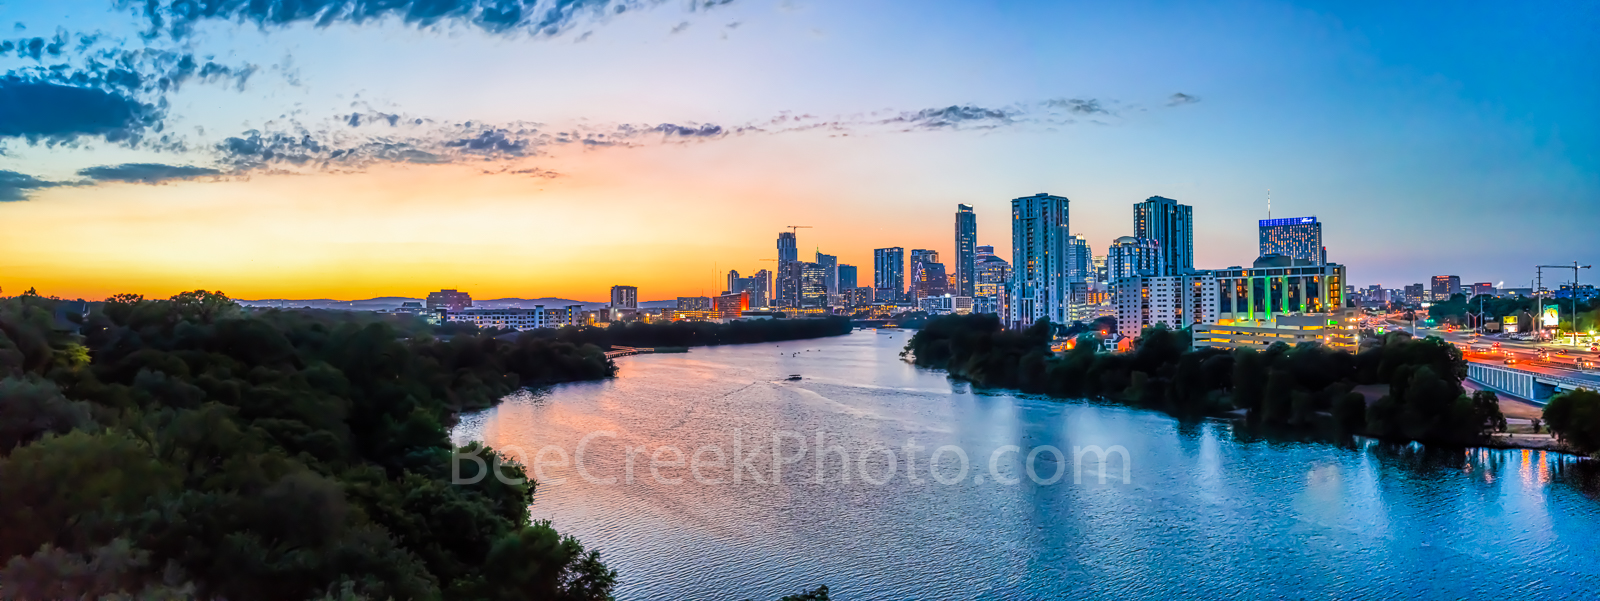 Austin Aerial Cityscape Pano - Austin aerial cityscape after sunset panorama taken from a birds eye view. This is an aerial image...